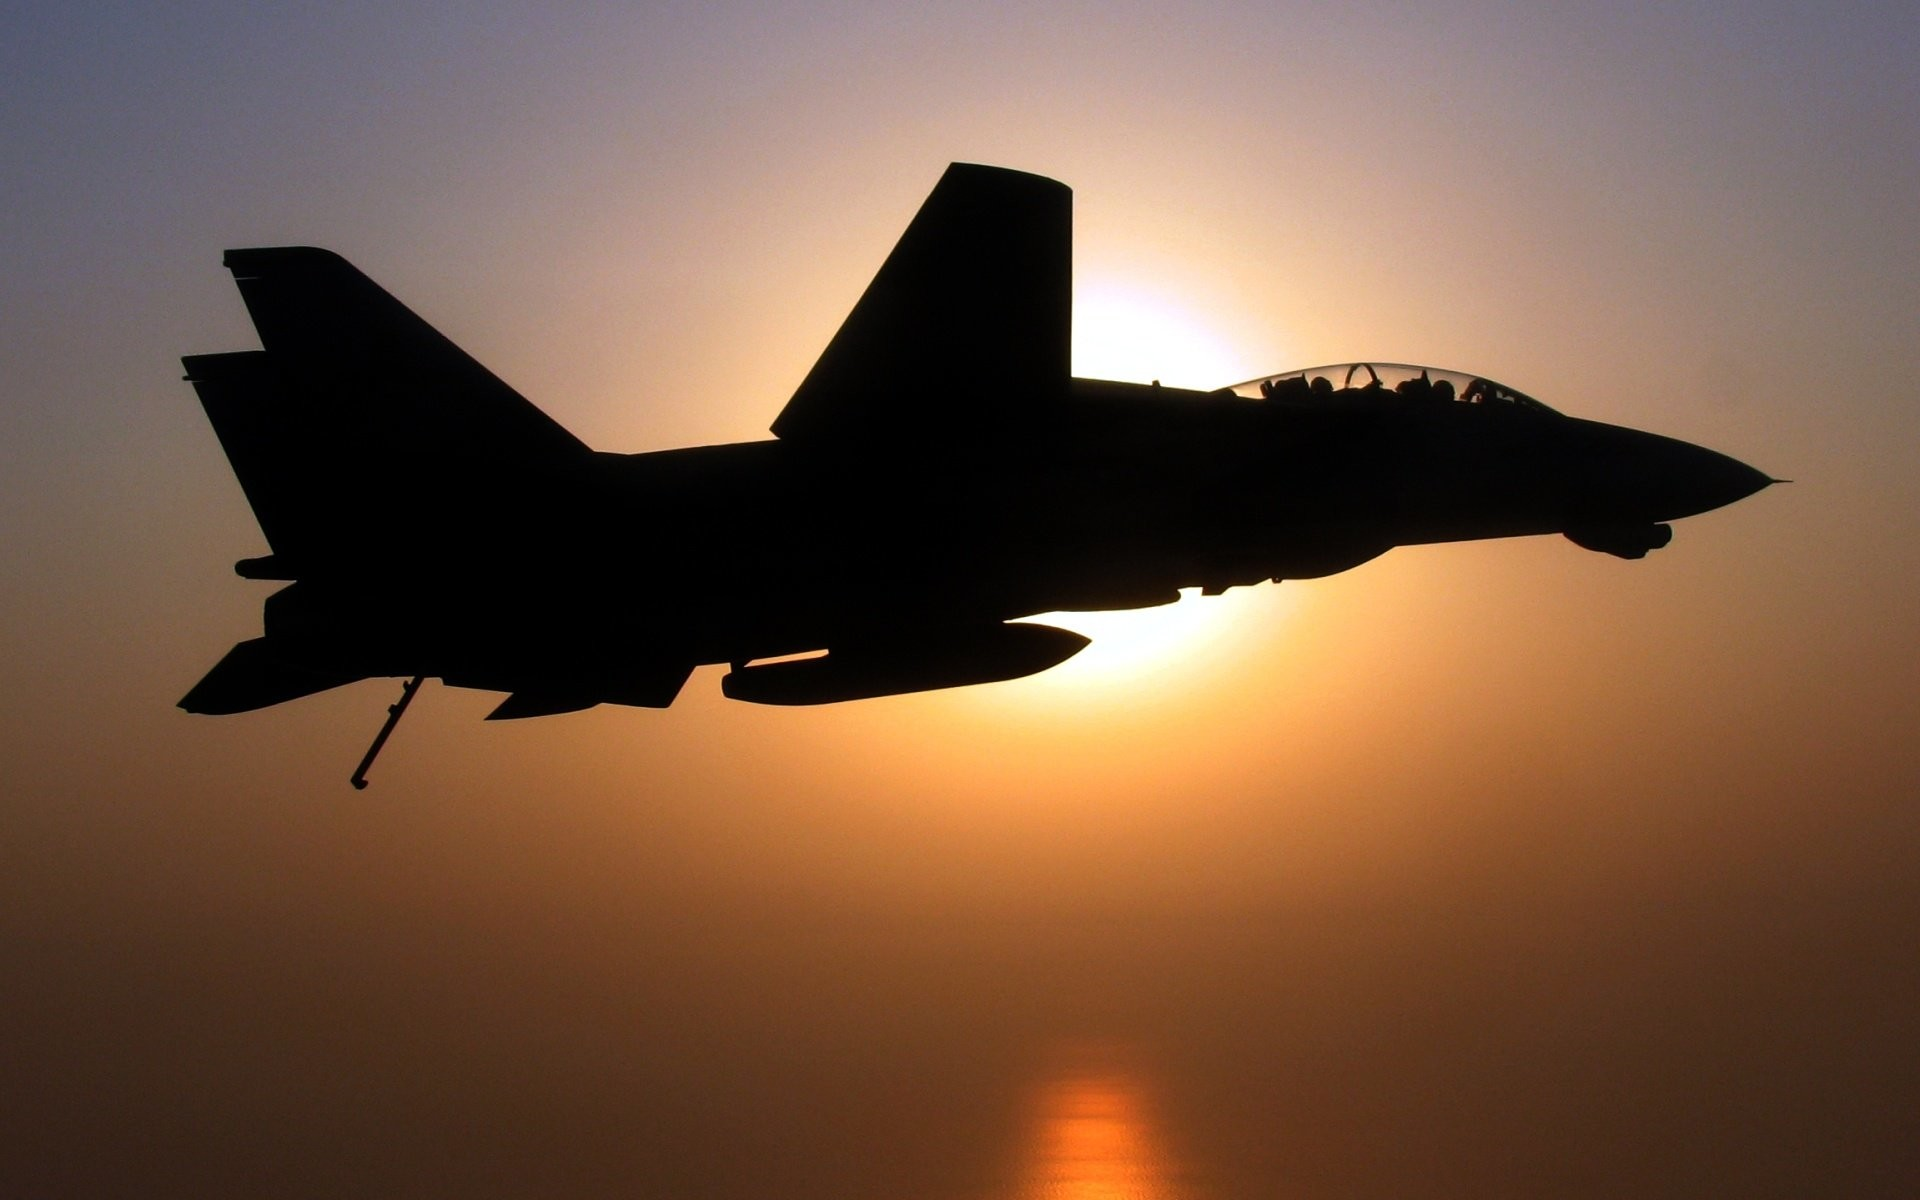 Res: 1920x1200, Aircraft military silhouettes navy F-14 Tomcat wallpaper |  |  328050 | WallpaperUP